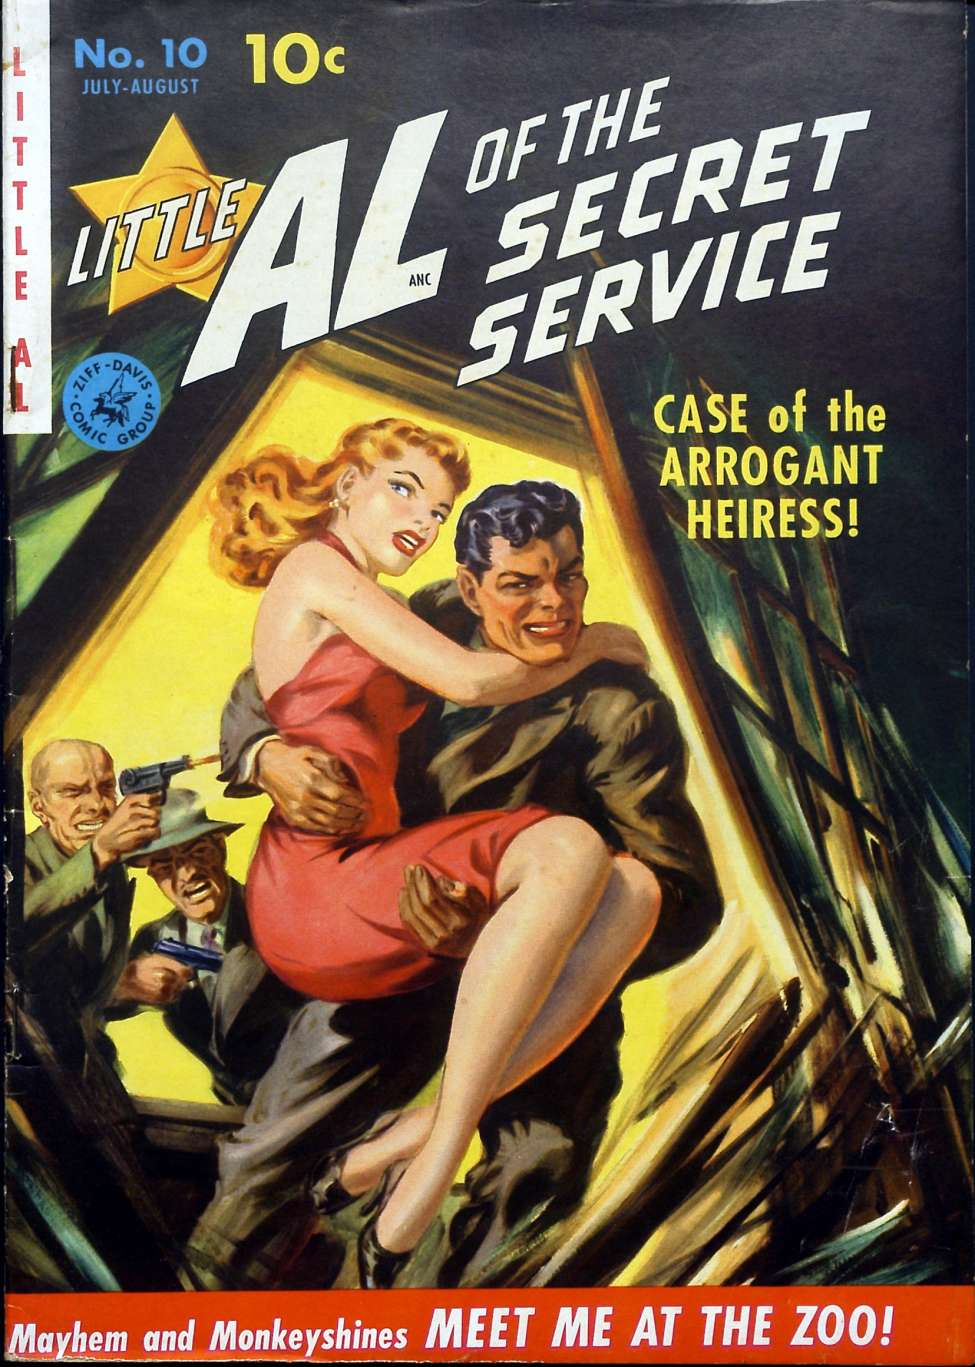 Little Al of the Secret Service #10, by Ziff-Davis